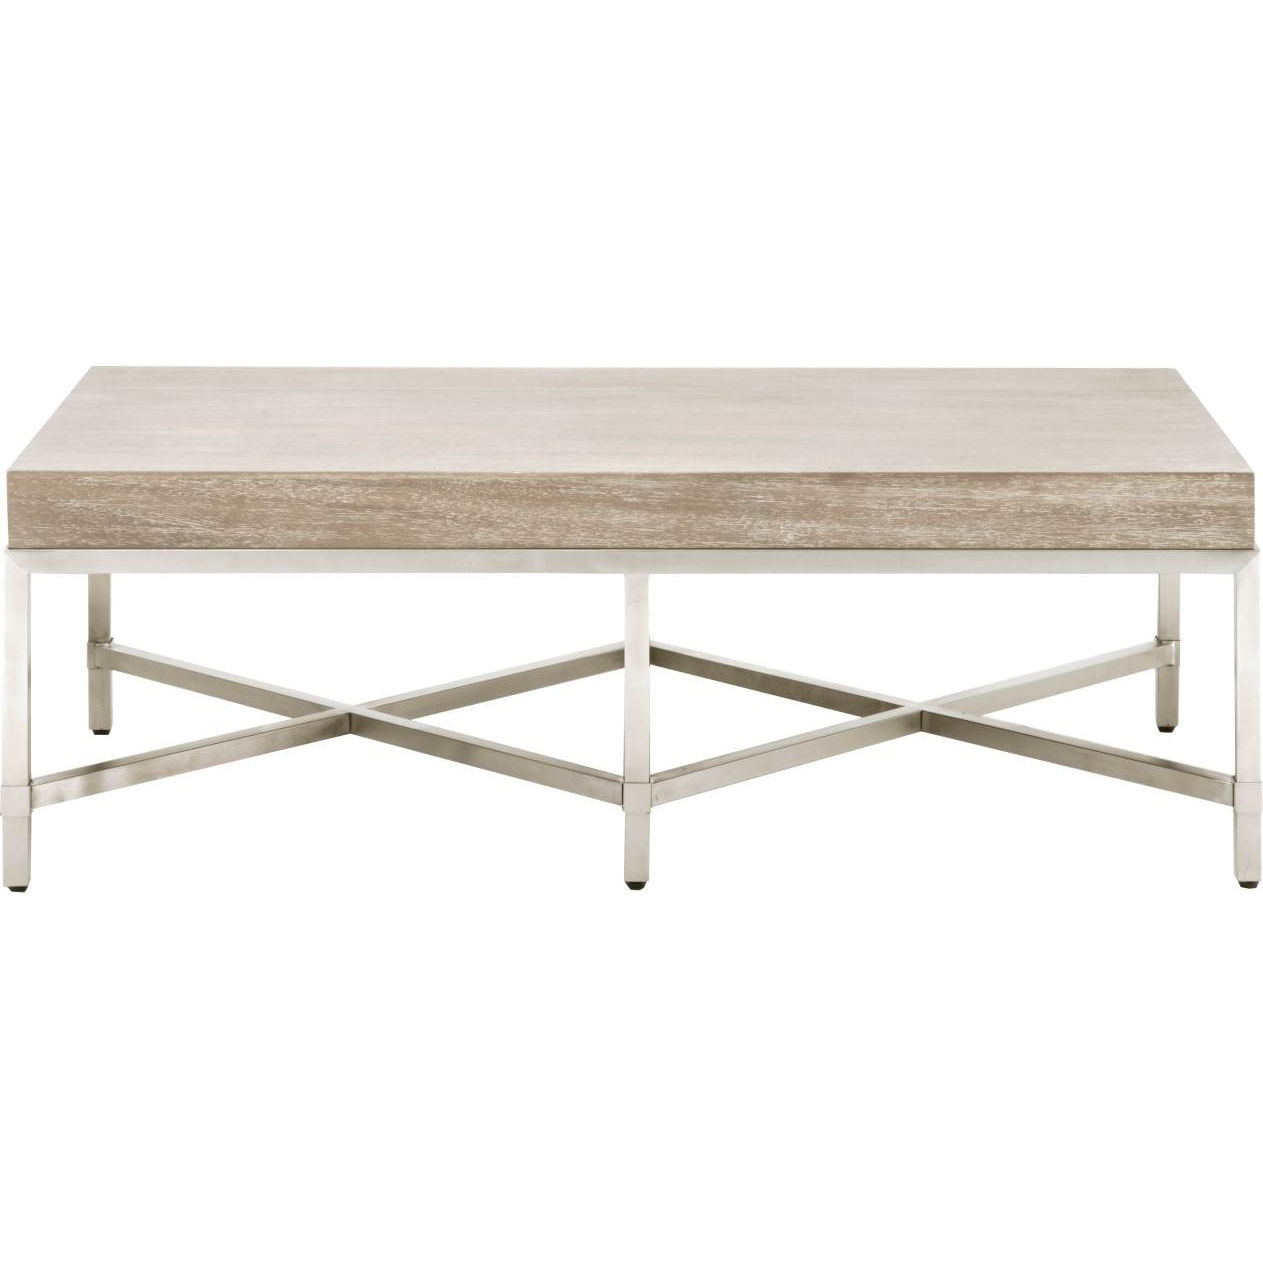 Orient express furniture 6117 ng bstl strand coffee table in grey acacia brushed stainless steel